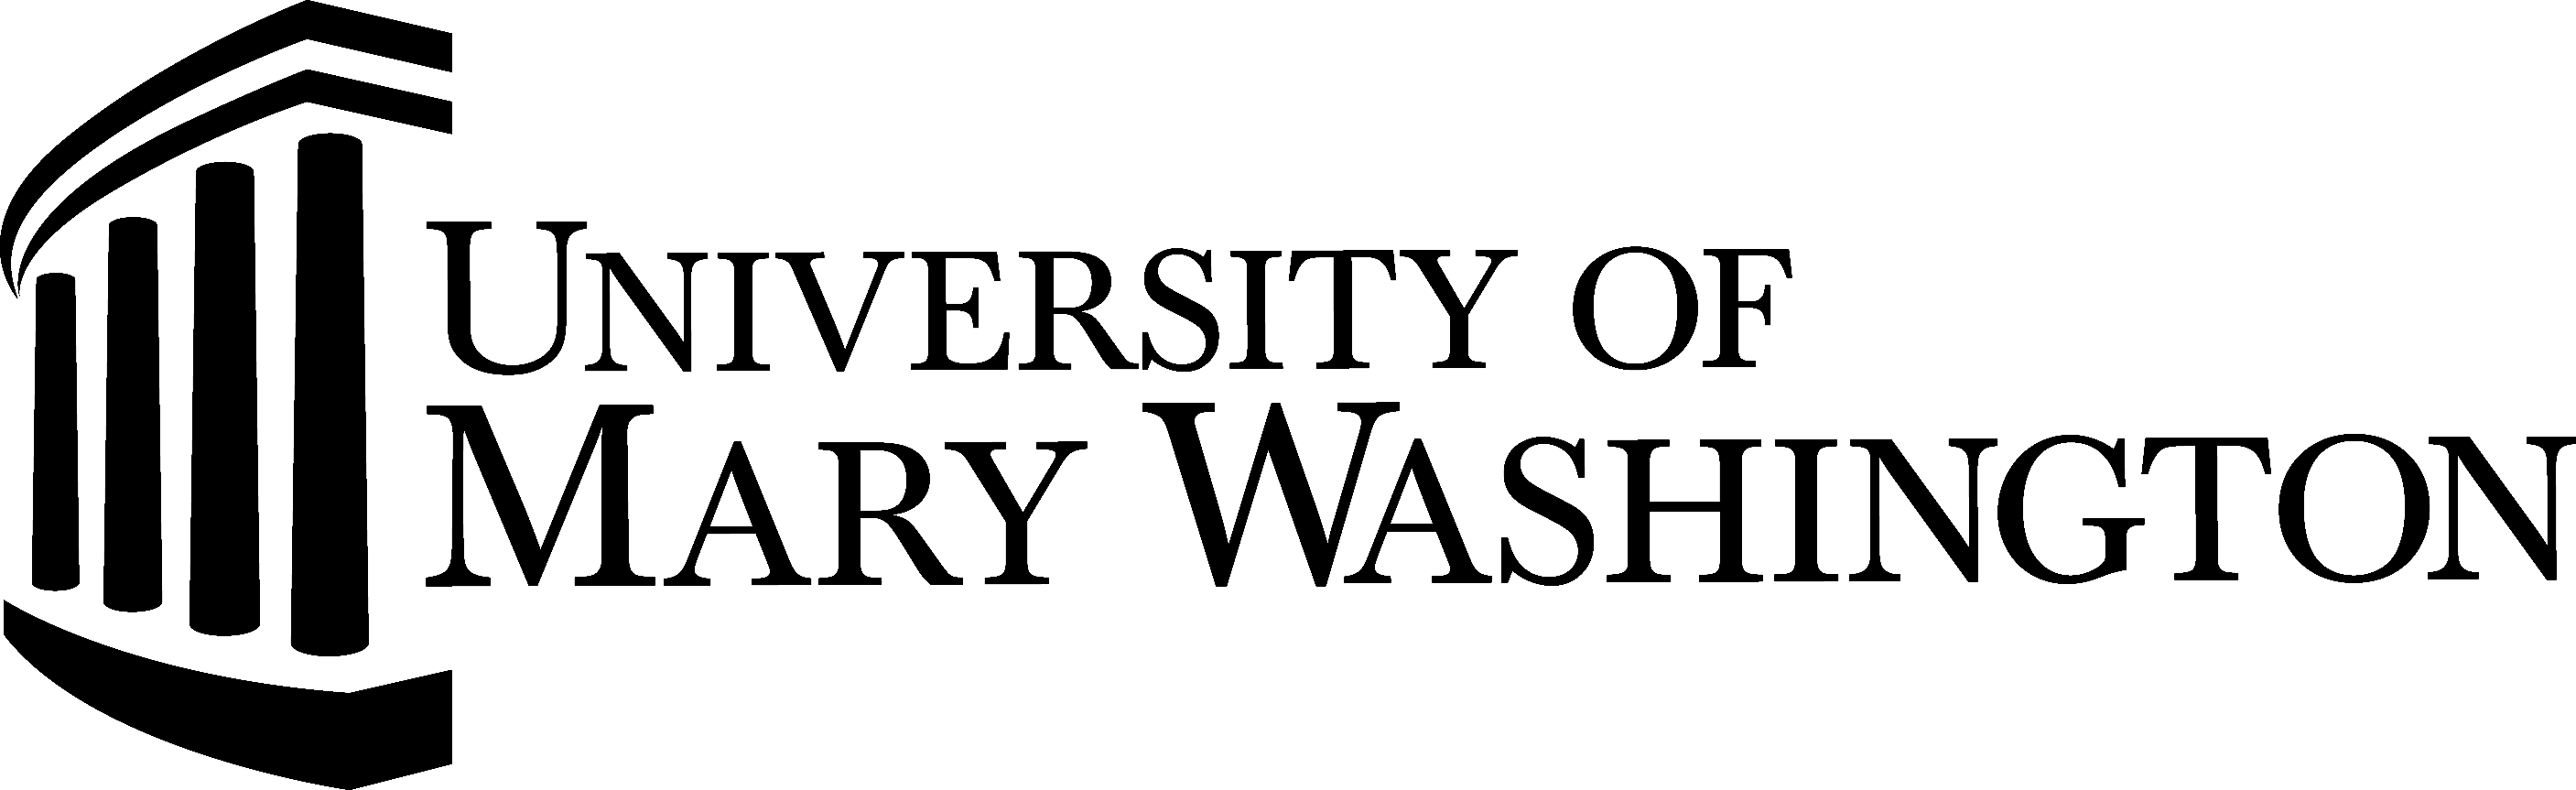 Guest post on University of Mary Washington umw. edu DA80